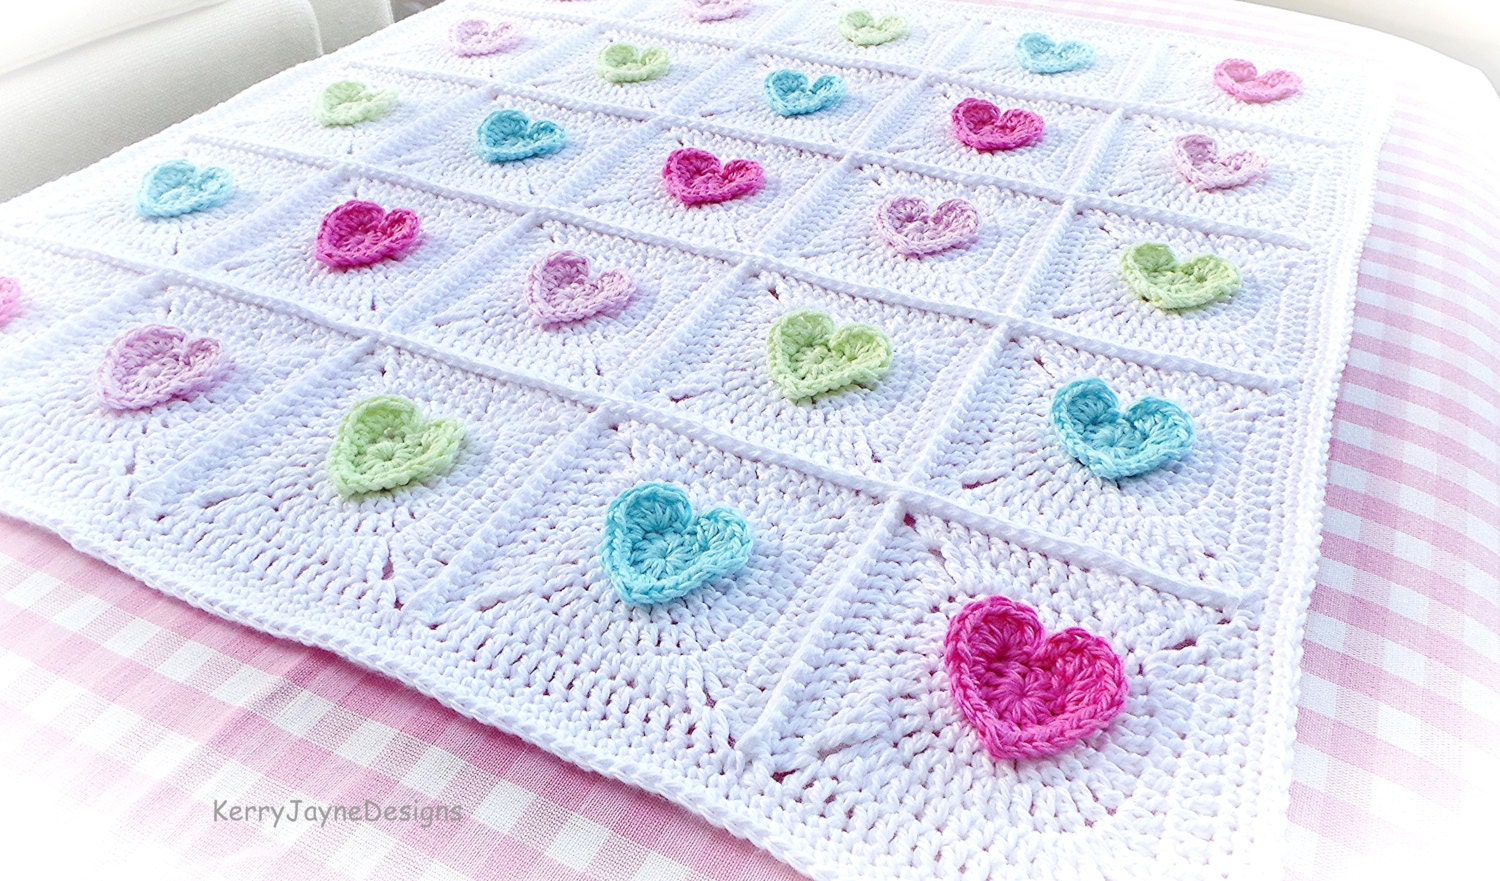 Crochet pattern all heart blanket crochet blanket pattern zoom bankloansurffo Images